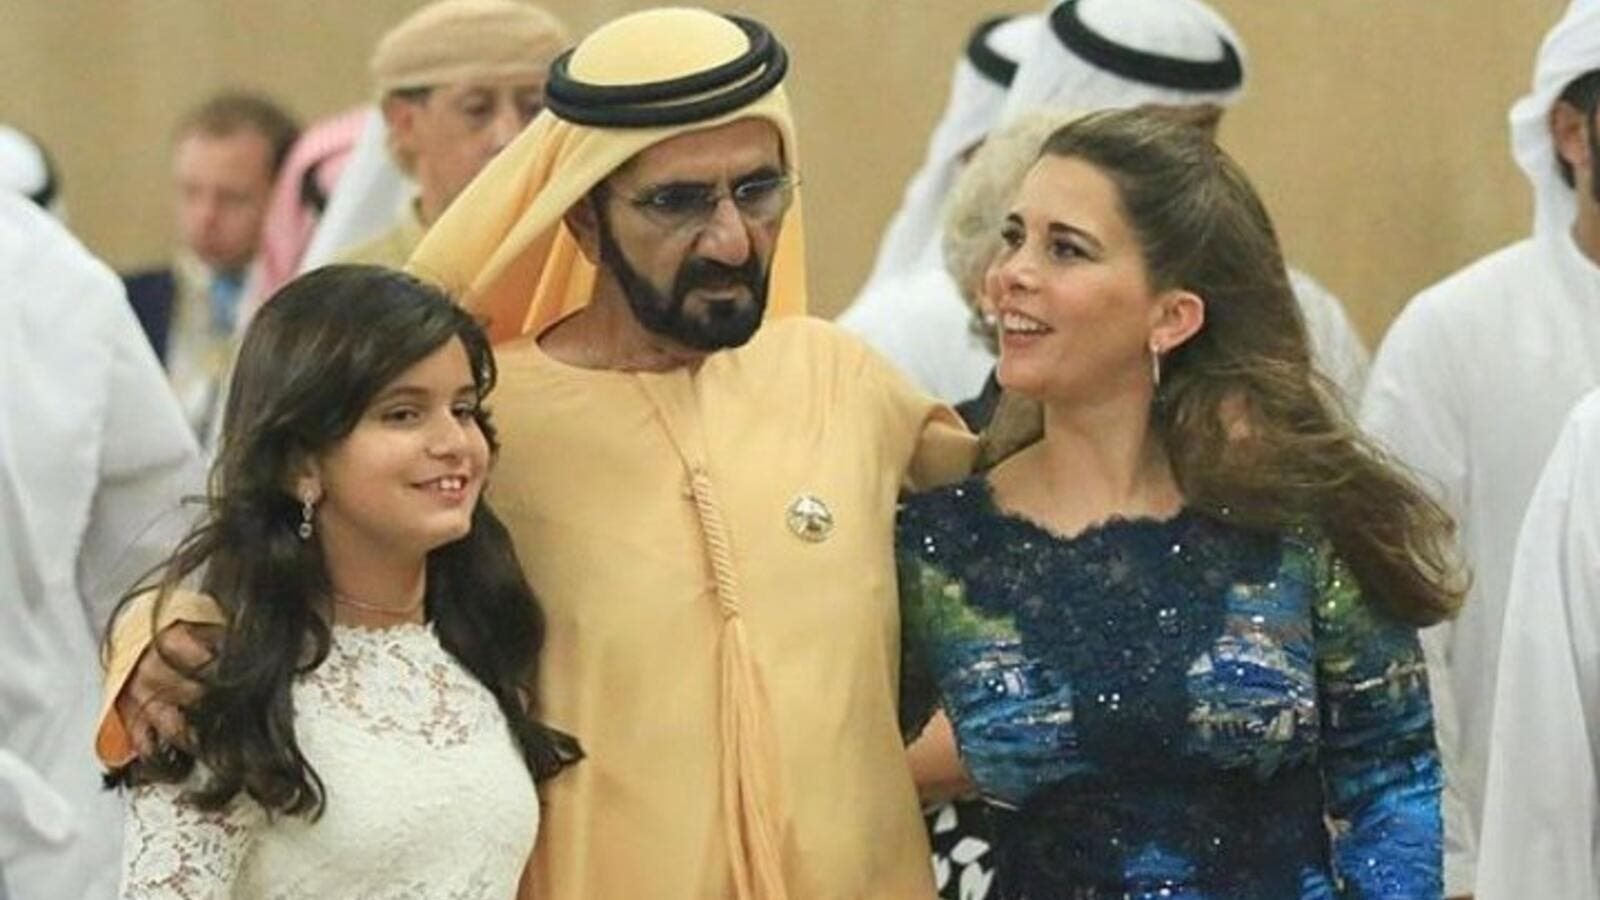 HRH Sheikh Mohammed Bin Rashid Al Maktoum, The Vice President and Prime Minister of the United Arab Emirates (UAE) and the Ruler of the Emirate of Dubai, With His Wife,  HRH Princess Haya Bint Al Hussein, with Their Daughter, HRH Sheikha Jalila (Twitter)